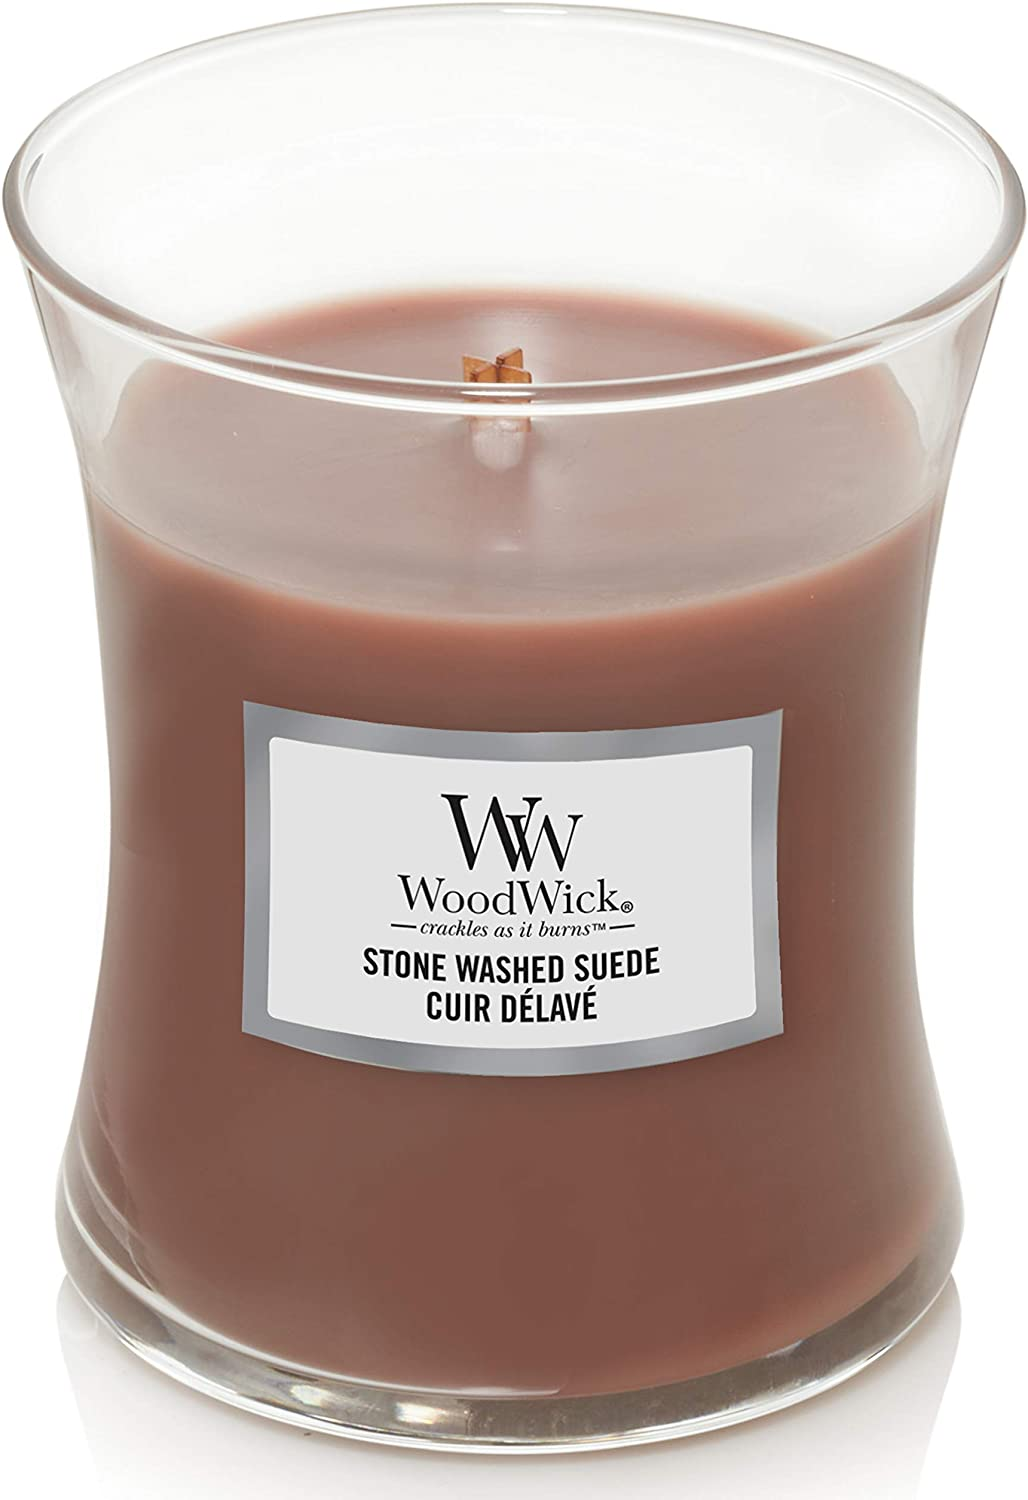 WoodWick Medium Hourglass Scented Candle Wick S Ranking TOP5 Crackling with Ranking TOP5